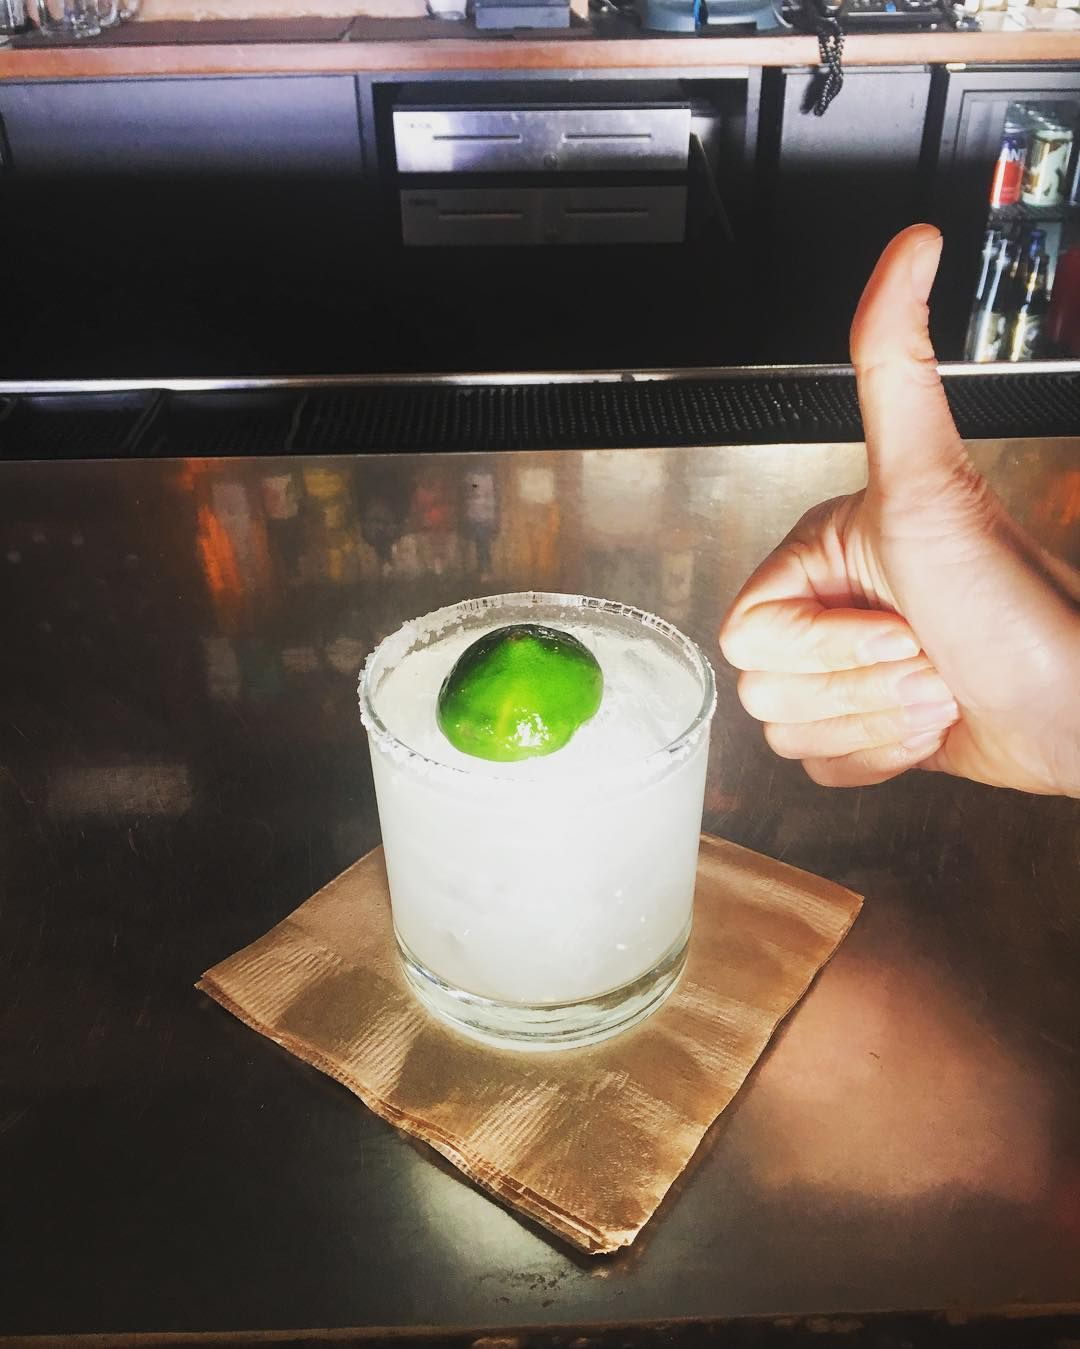 Happy national margarita day! Wouldn't miss this celebration for anything! Hope you take a moment to find your fave local watering whole to cheers with good friends too!  #takethebullbythehorns #shoplocal #socallife